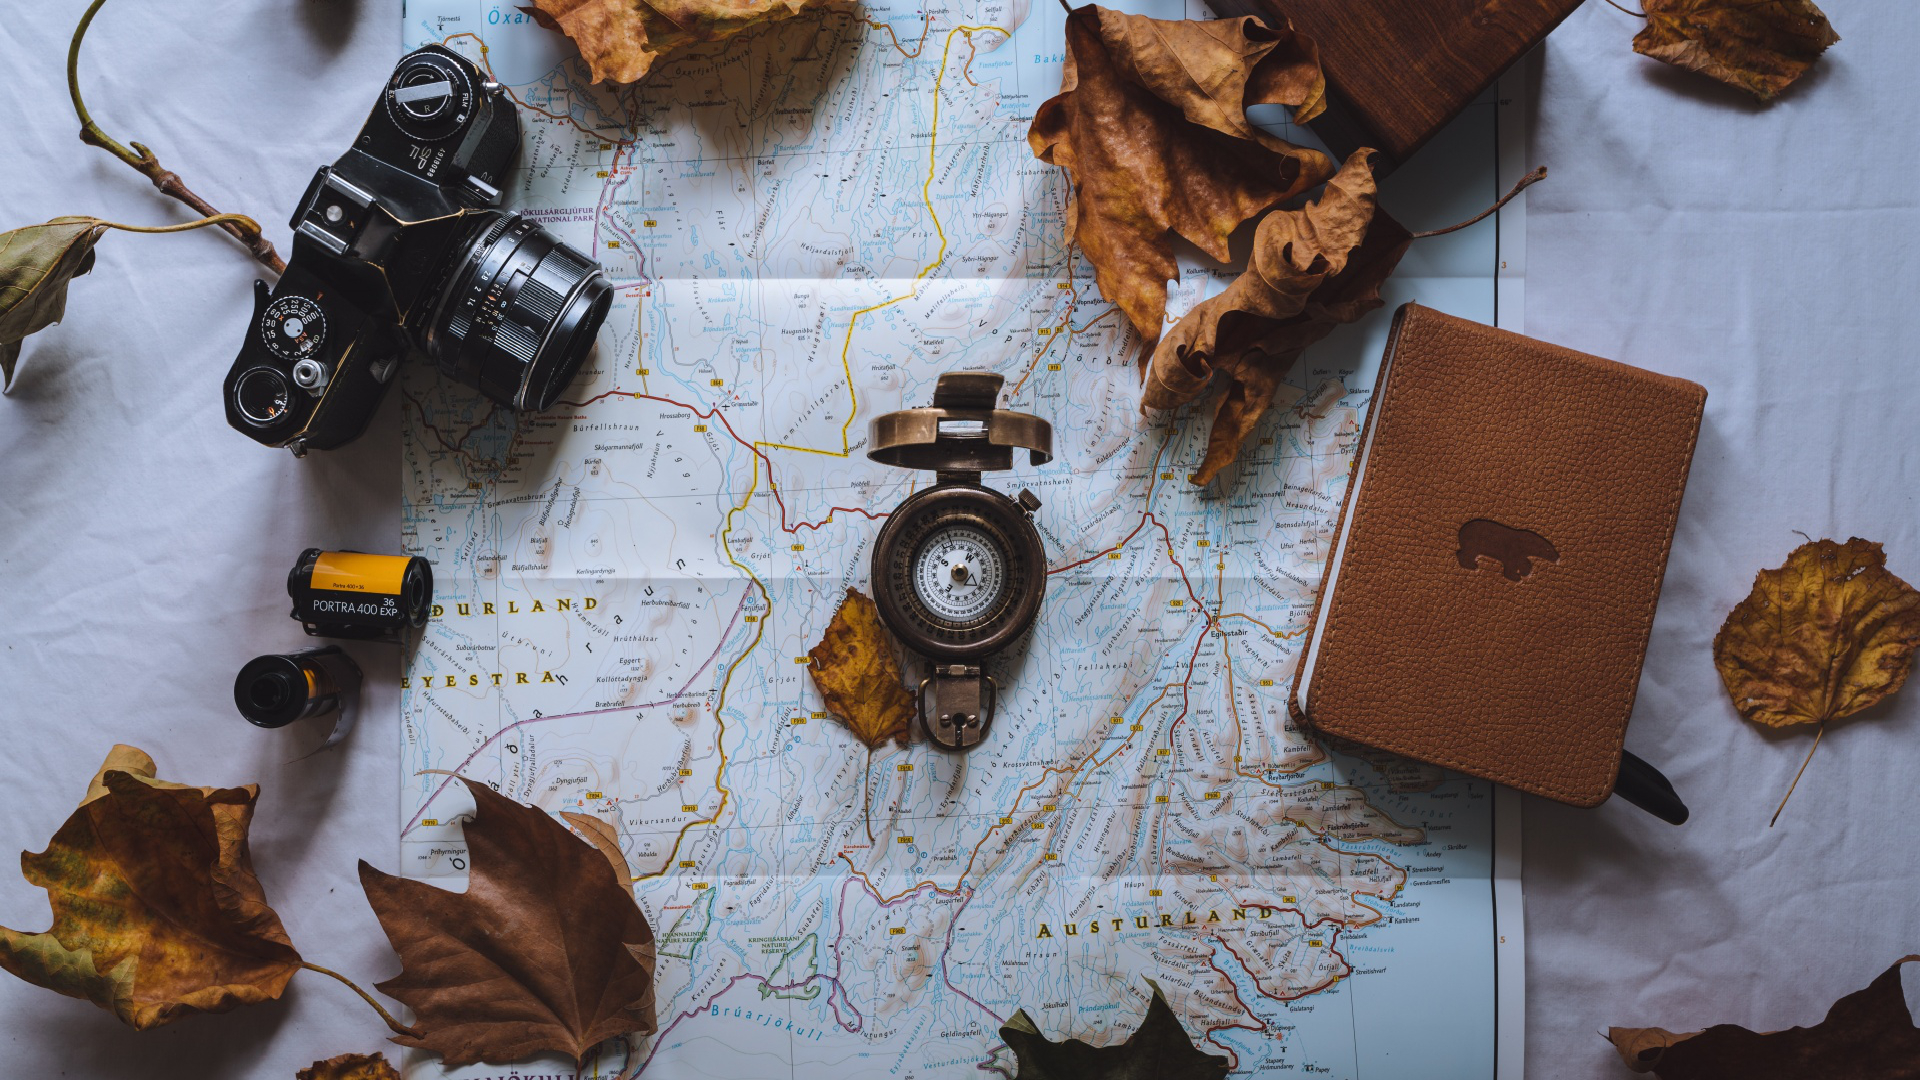 jaunt,city,metropolis,background,camera,travel,move,leaves,autumn,urban center,closeup,film,change of location,fall,locomotion,compass,papermap,trip,journey